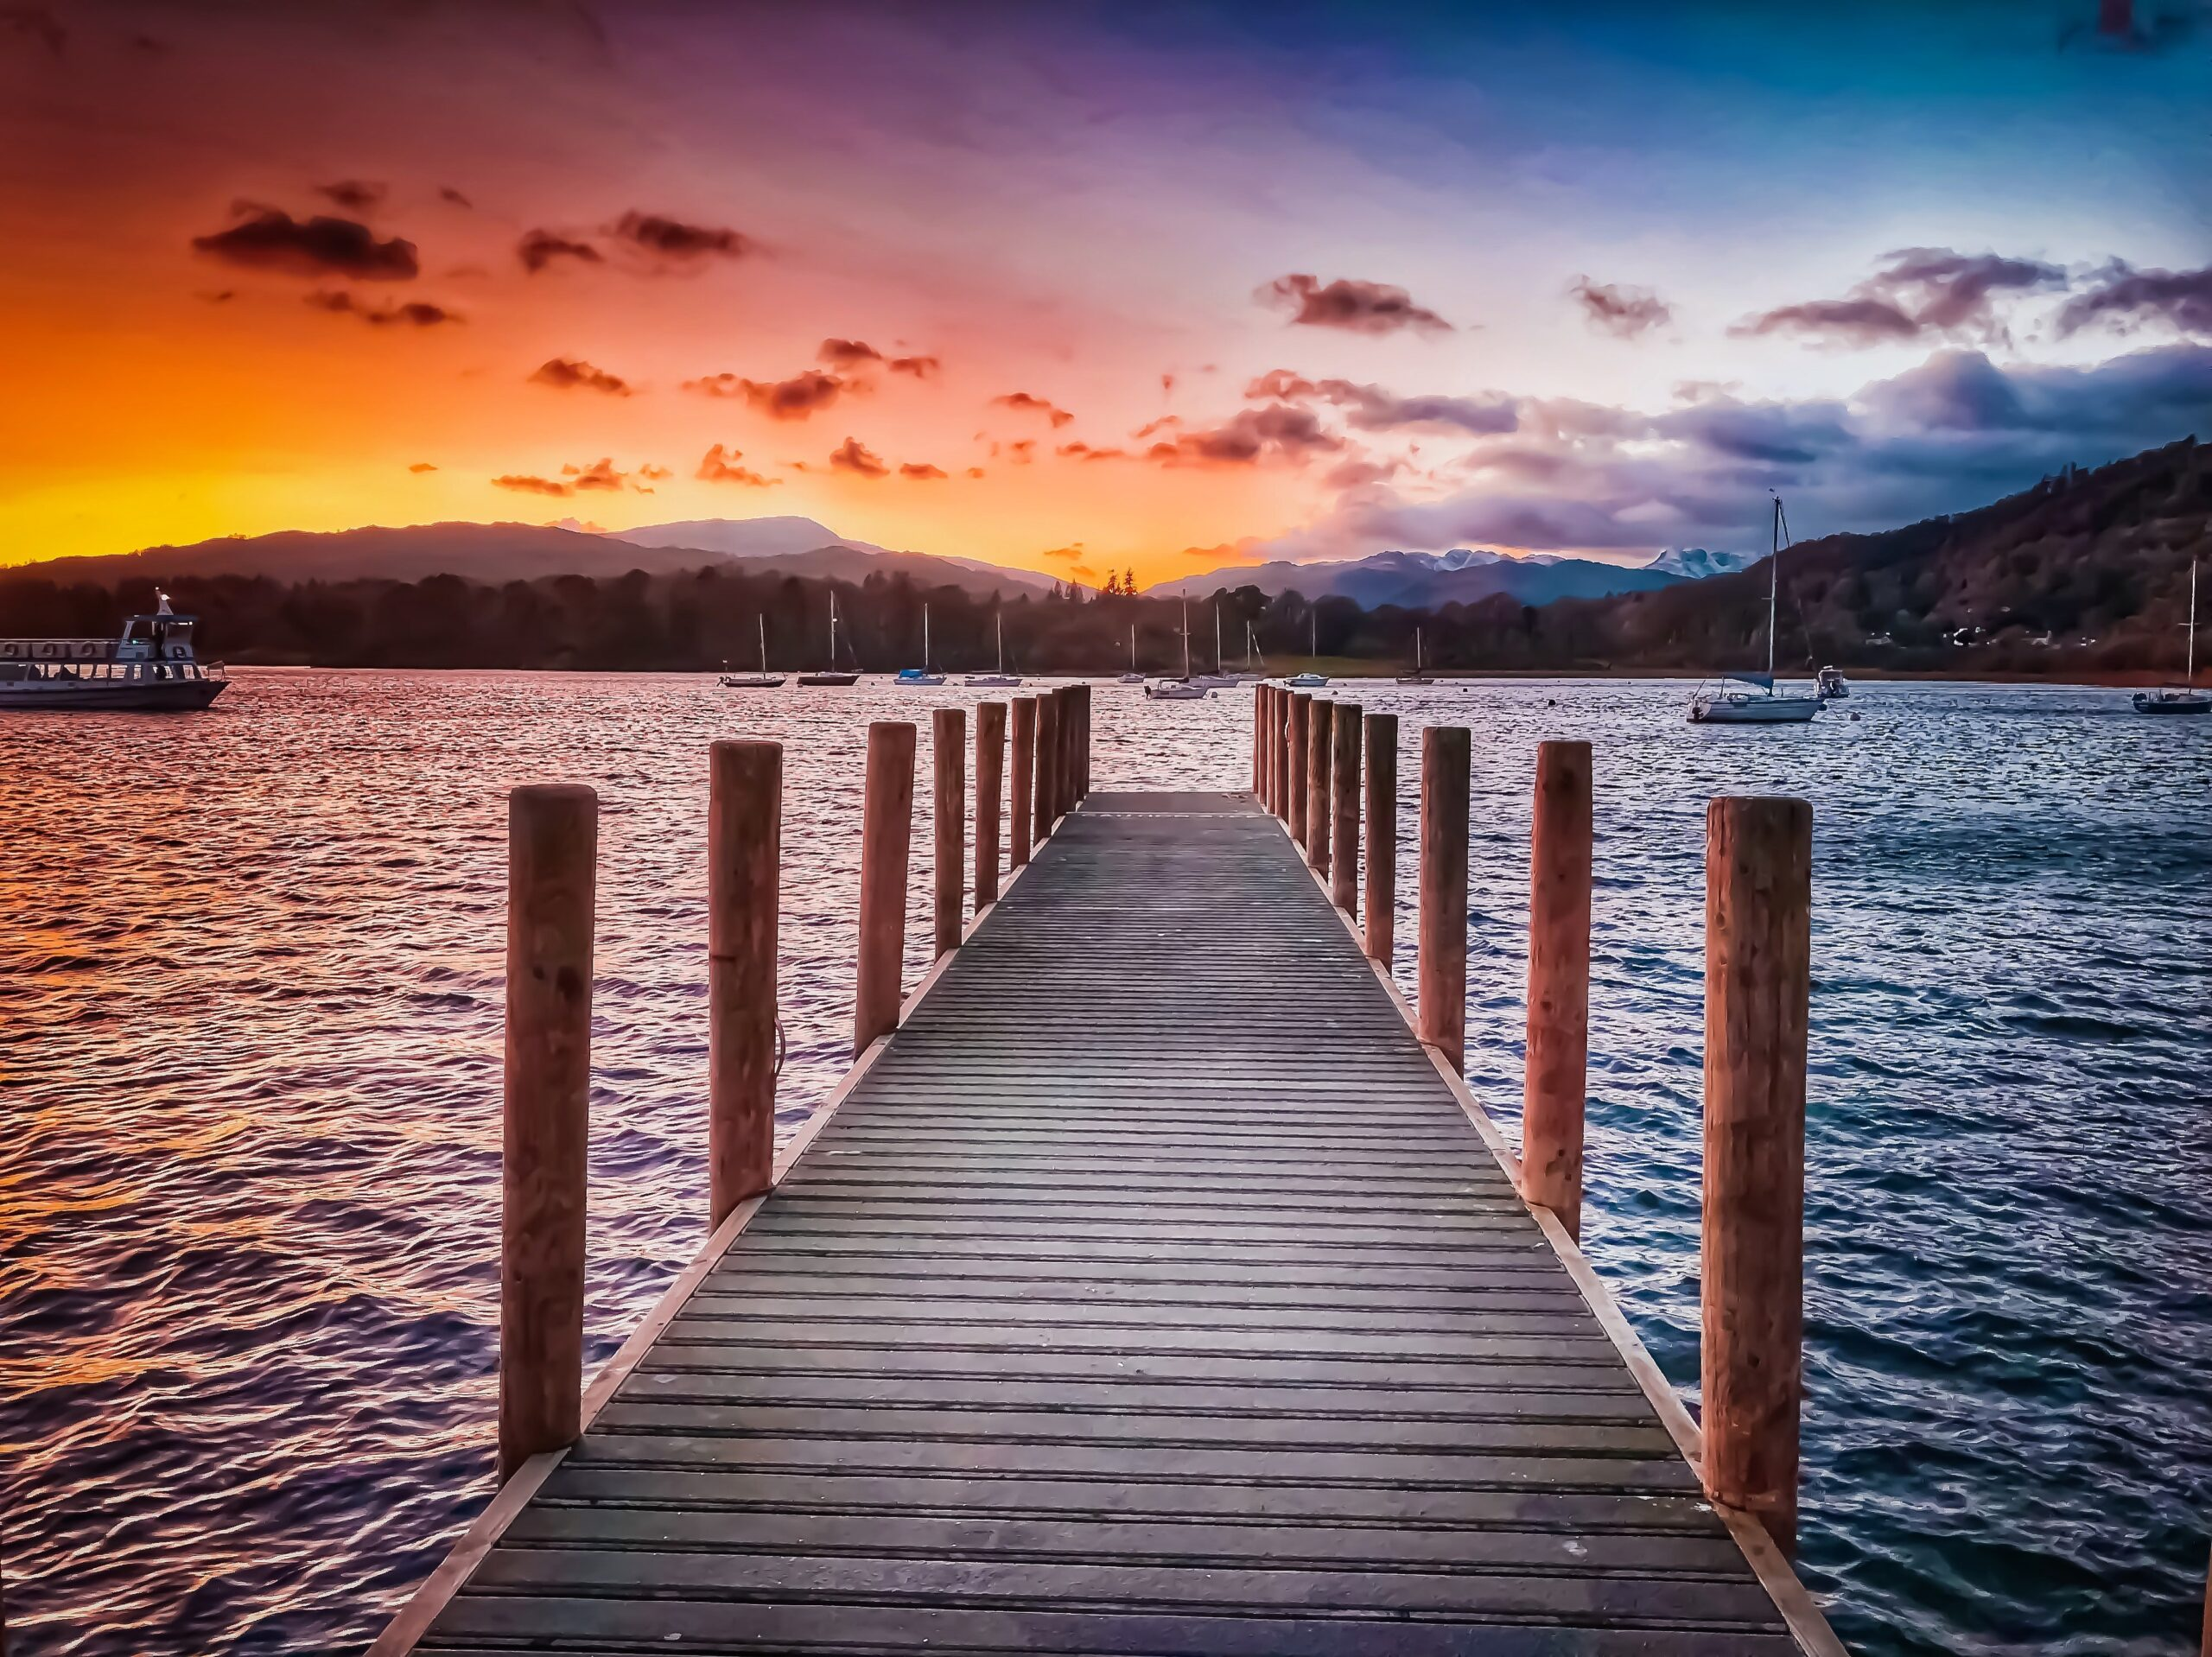 a pier on lake windermere with a sunset in the horizon